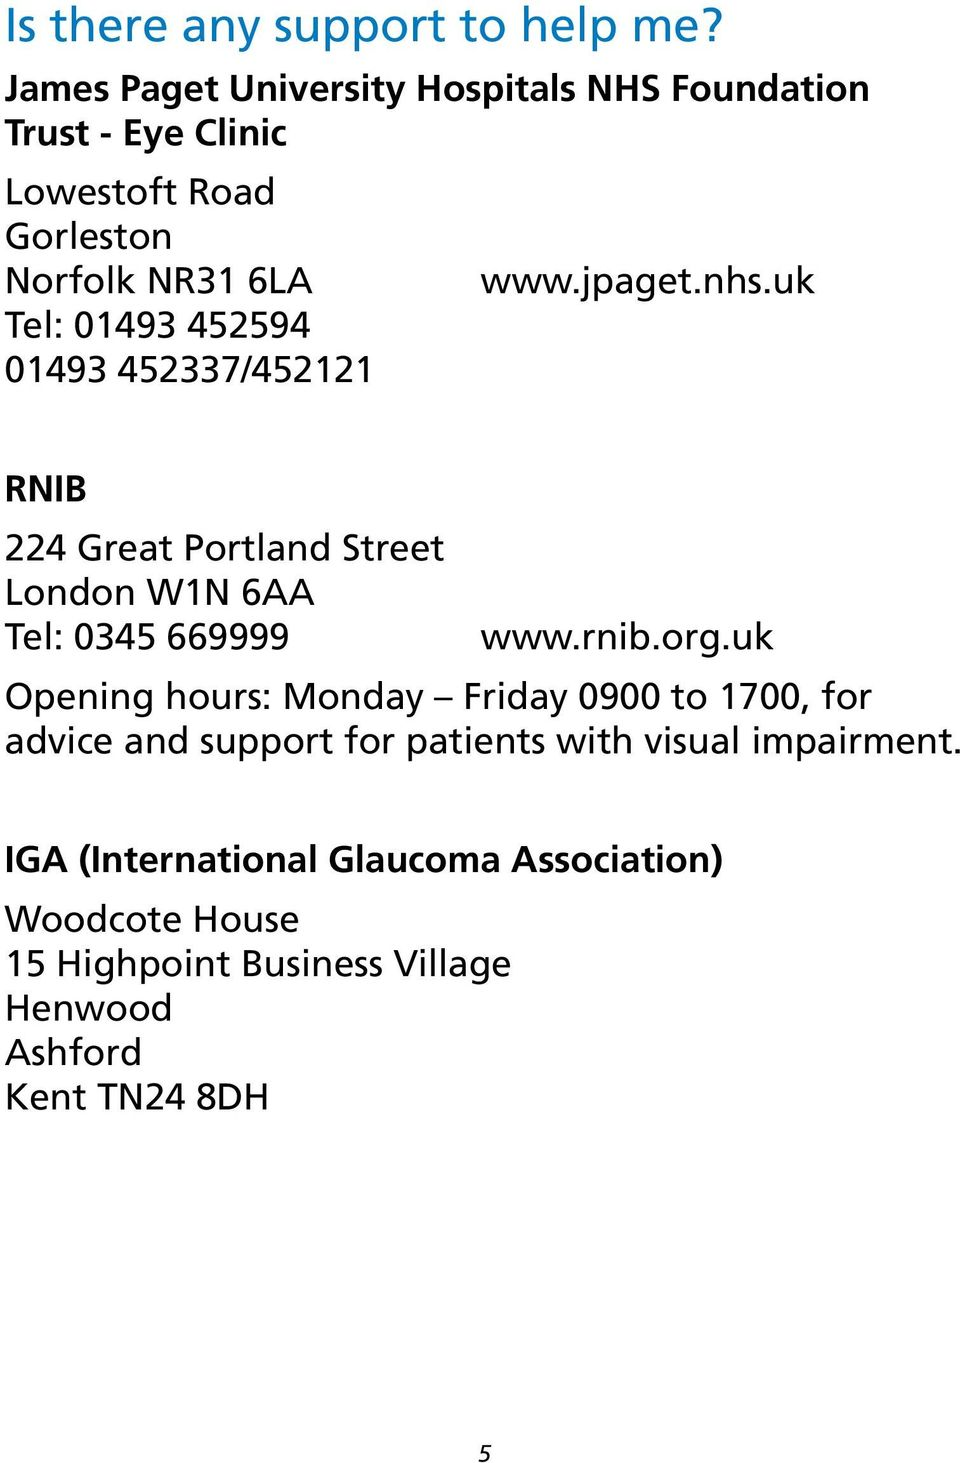 uk Tel: 01493 452594 01493 452337/452121 RNIB 224 Great Portland Street London W1N 6AA Tel: 0345 669999 www.rnib.org.